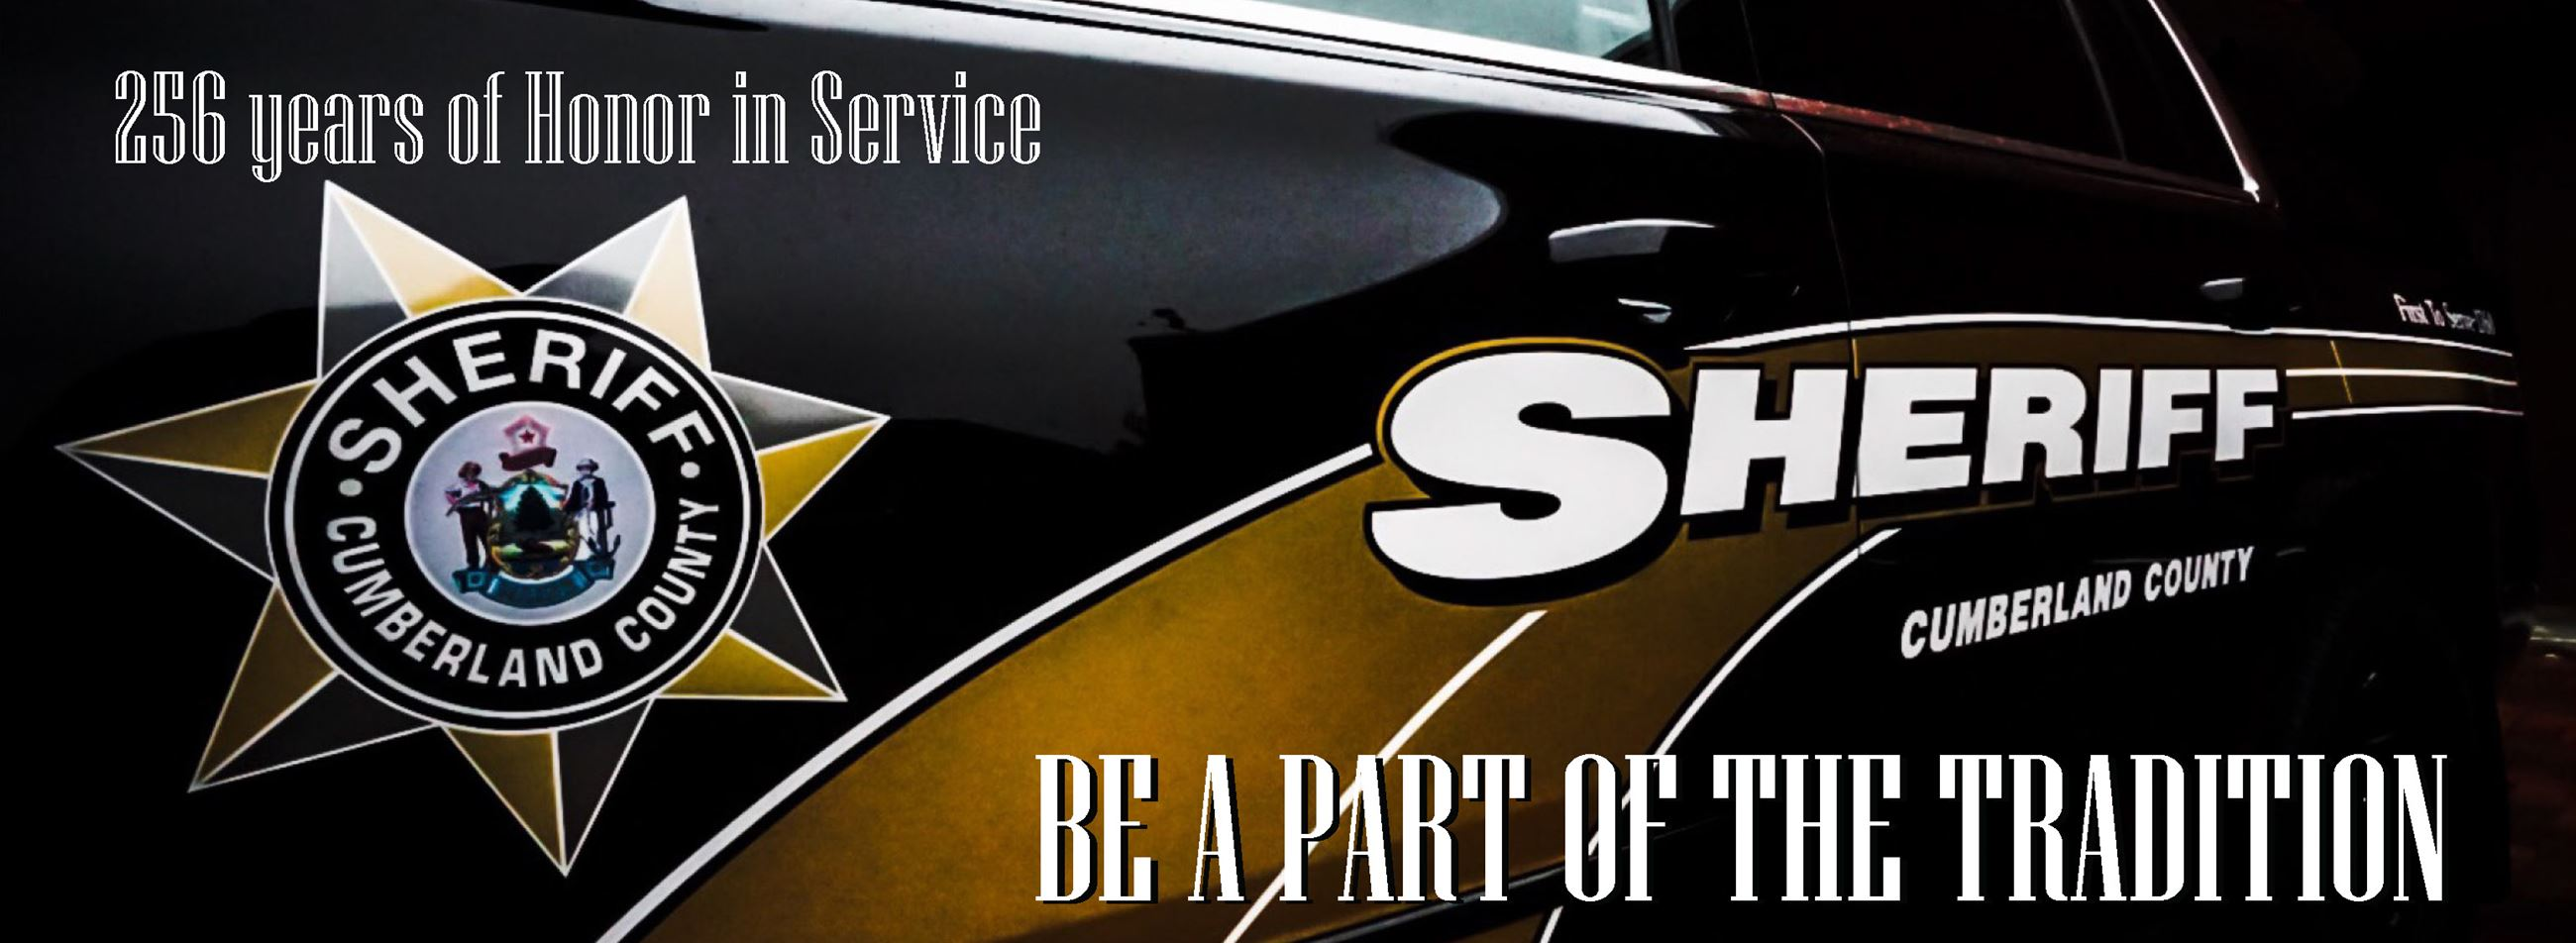 Police Cruiser: Be a Part of the Tradition Cumberland County Sheriff